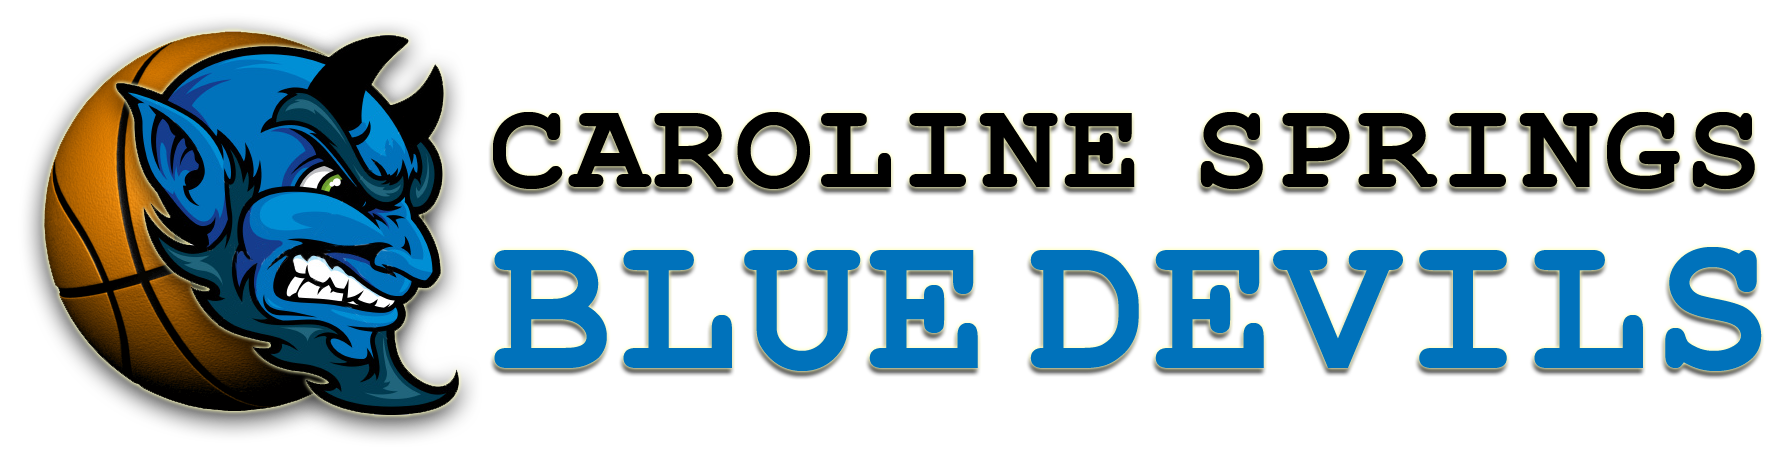 Caroline Springs Blue Devils Basketball